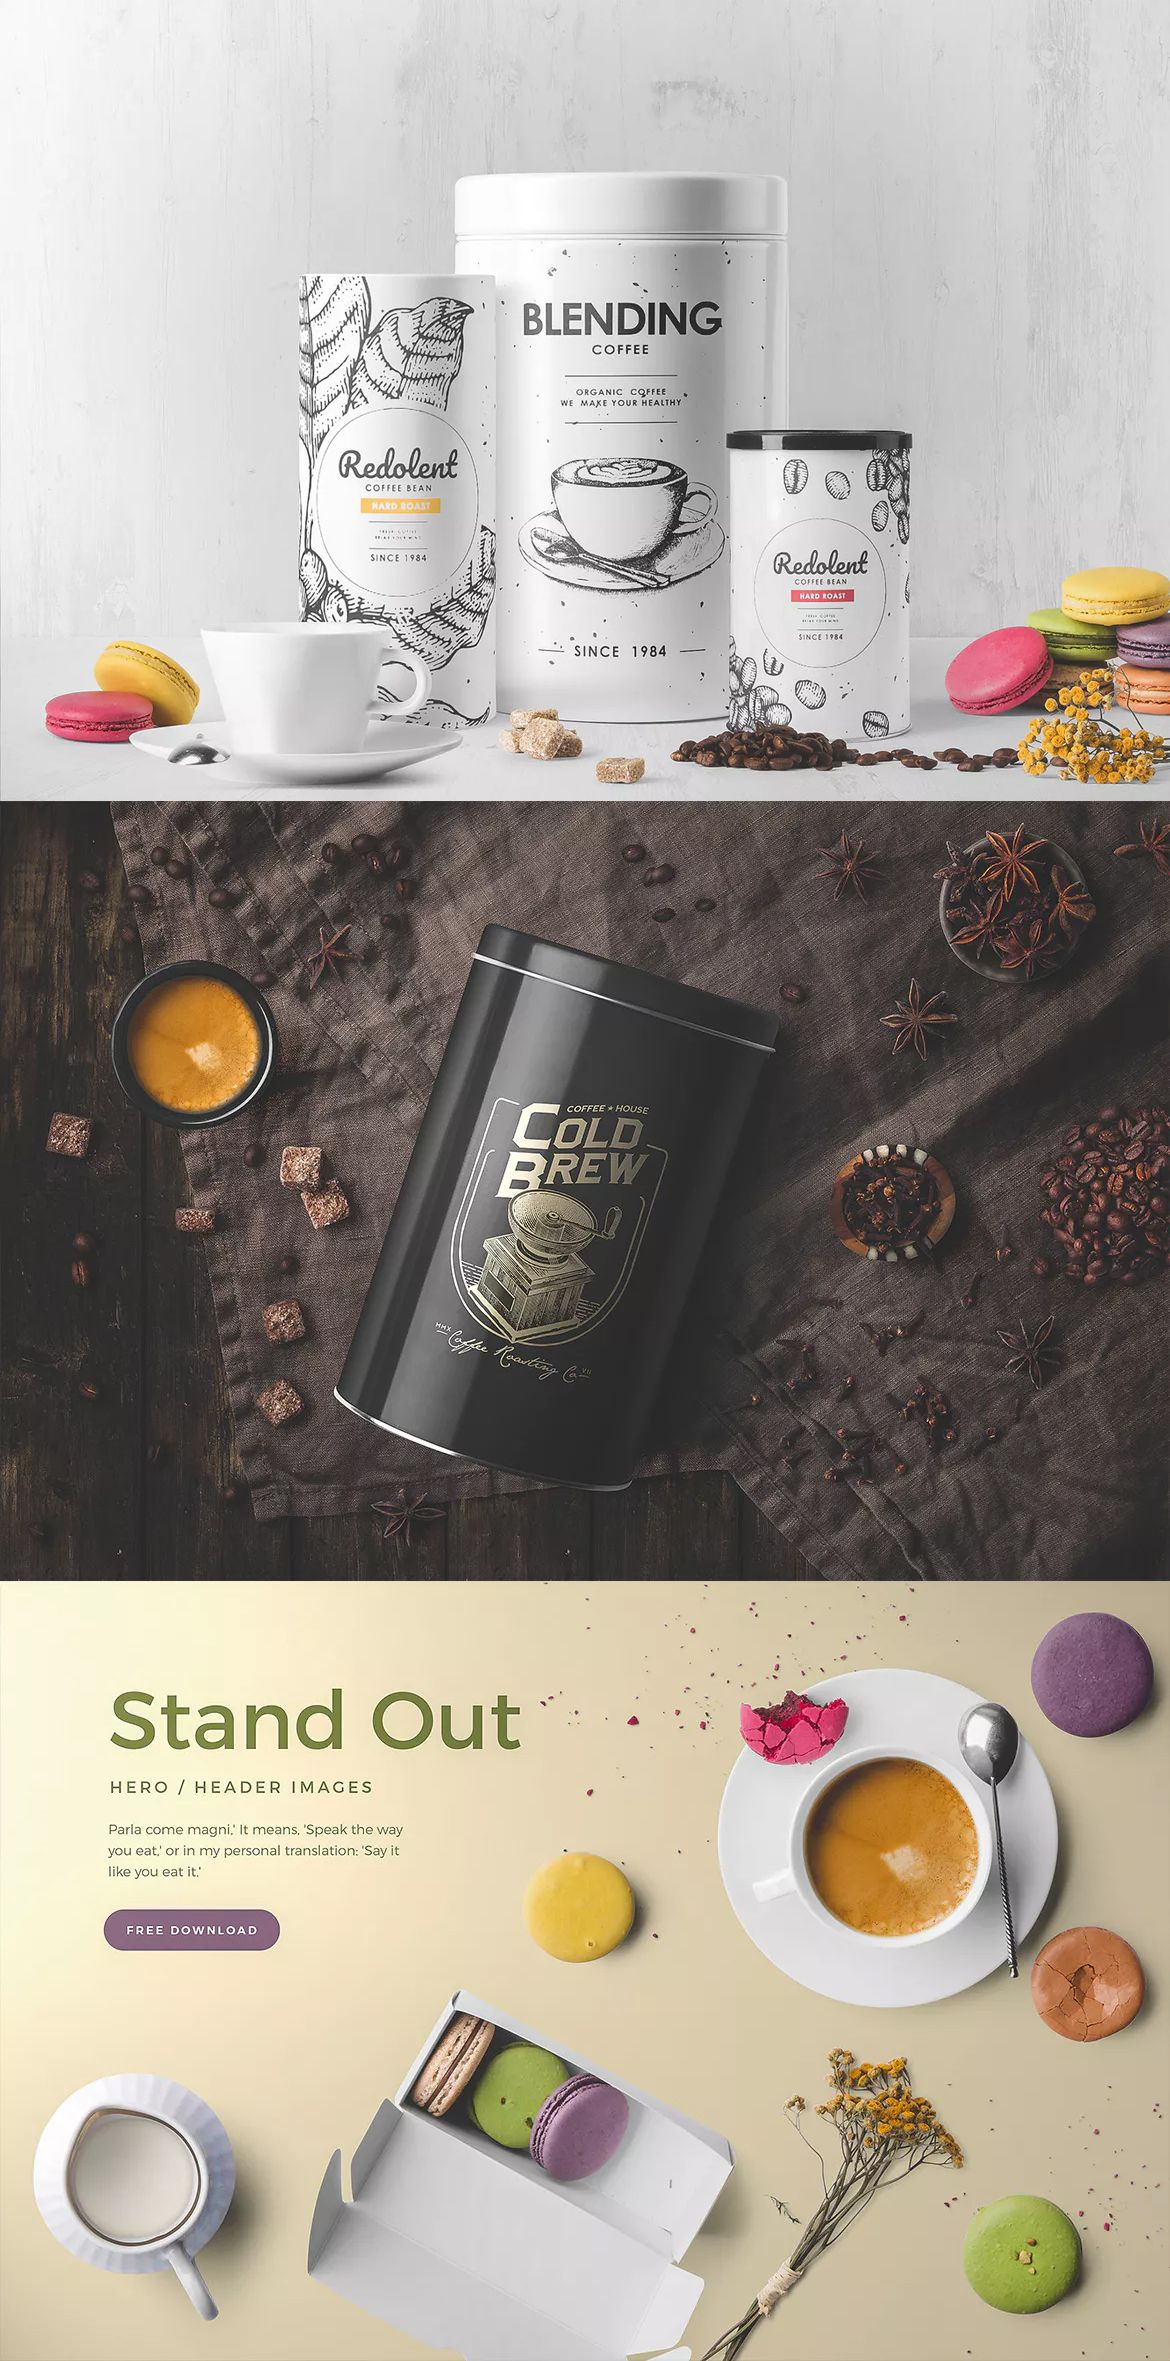 Download Coffee Packaging Mockup By Genetic96 On Envato Elements Coffee Packaging Packaging Mockup Food Packaging Design